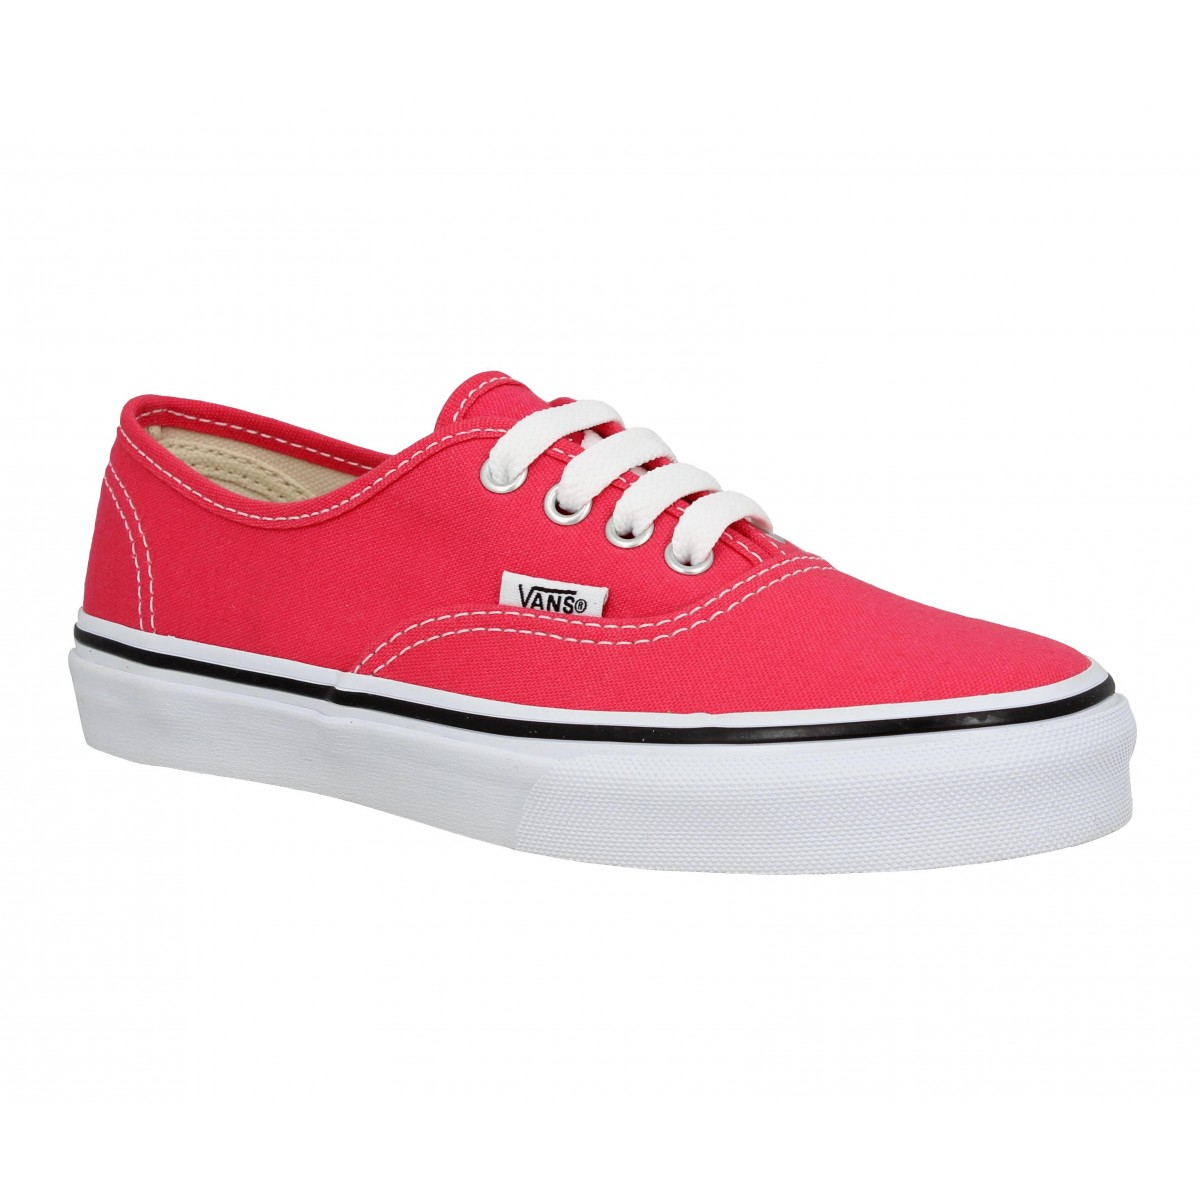 Baskets VANS Authentic toile Enfant Rouge Rose